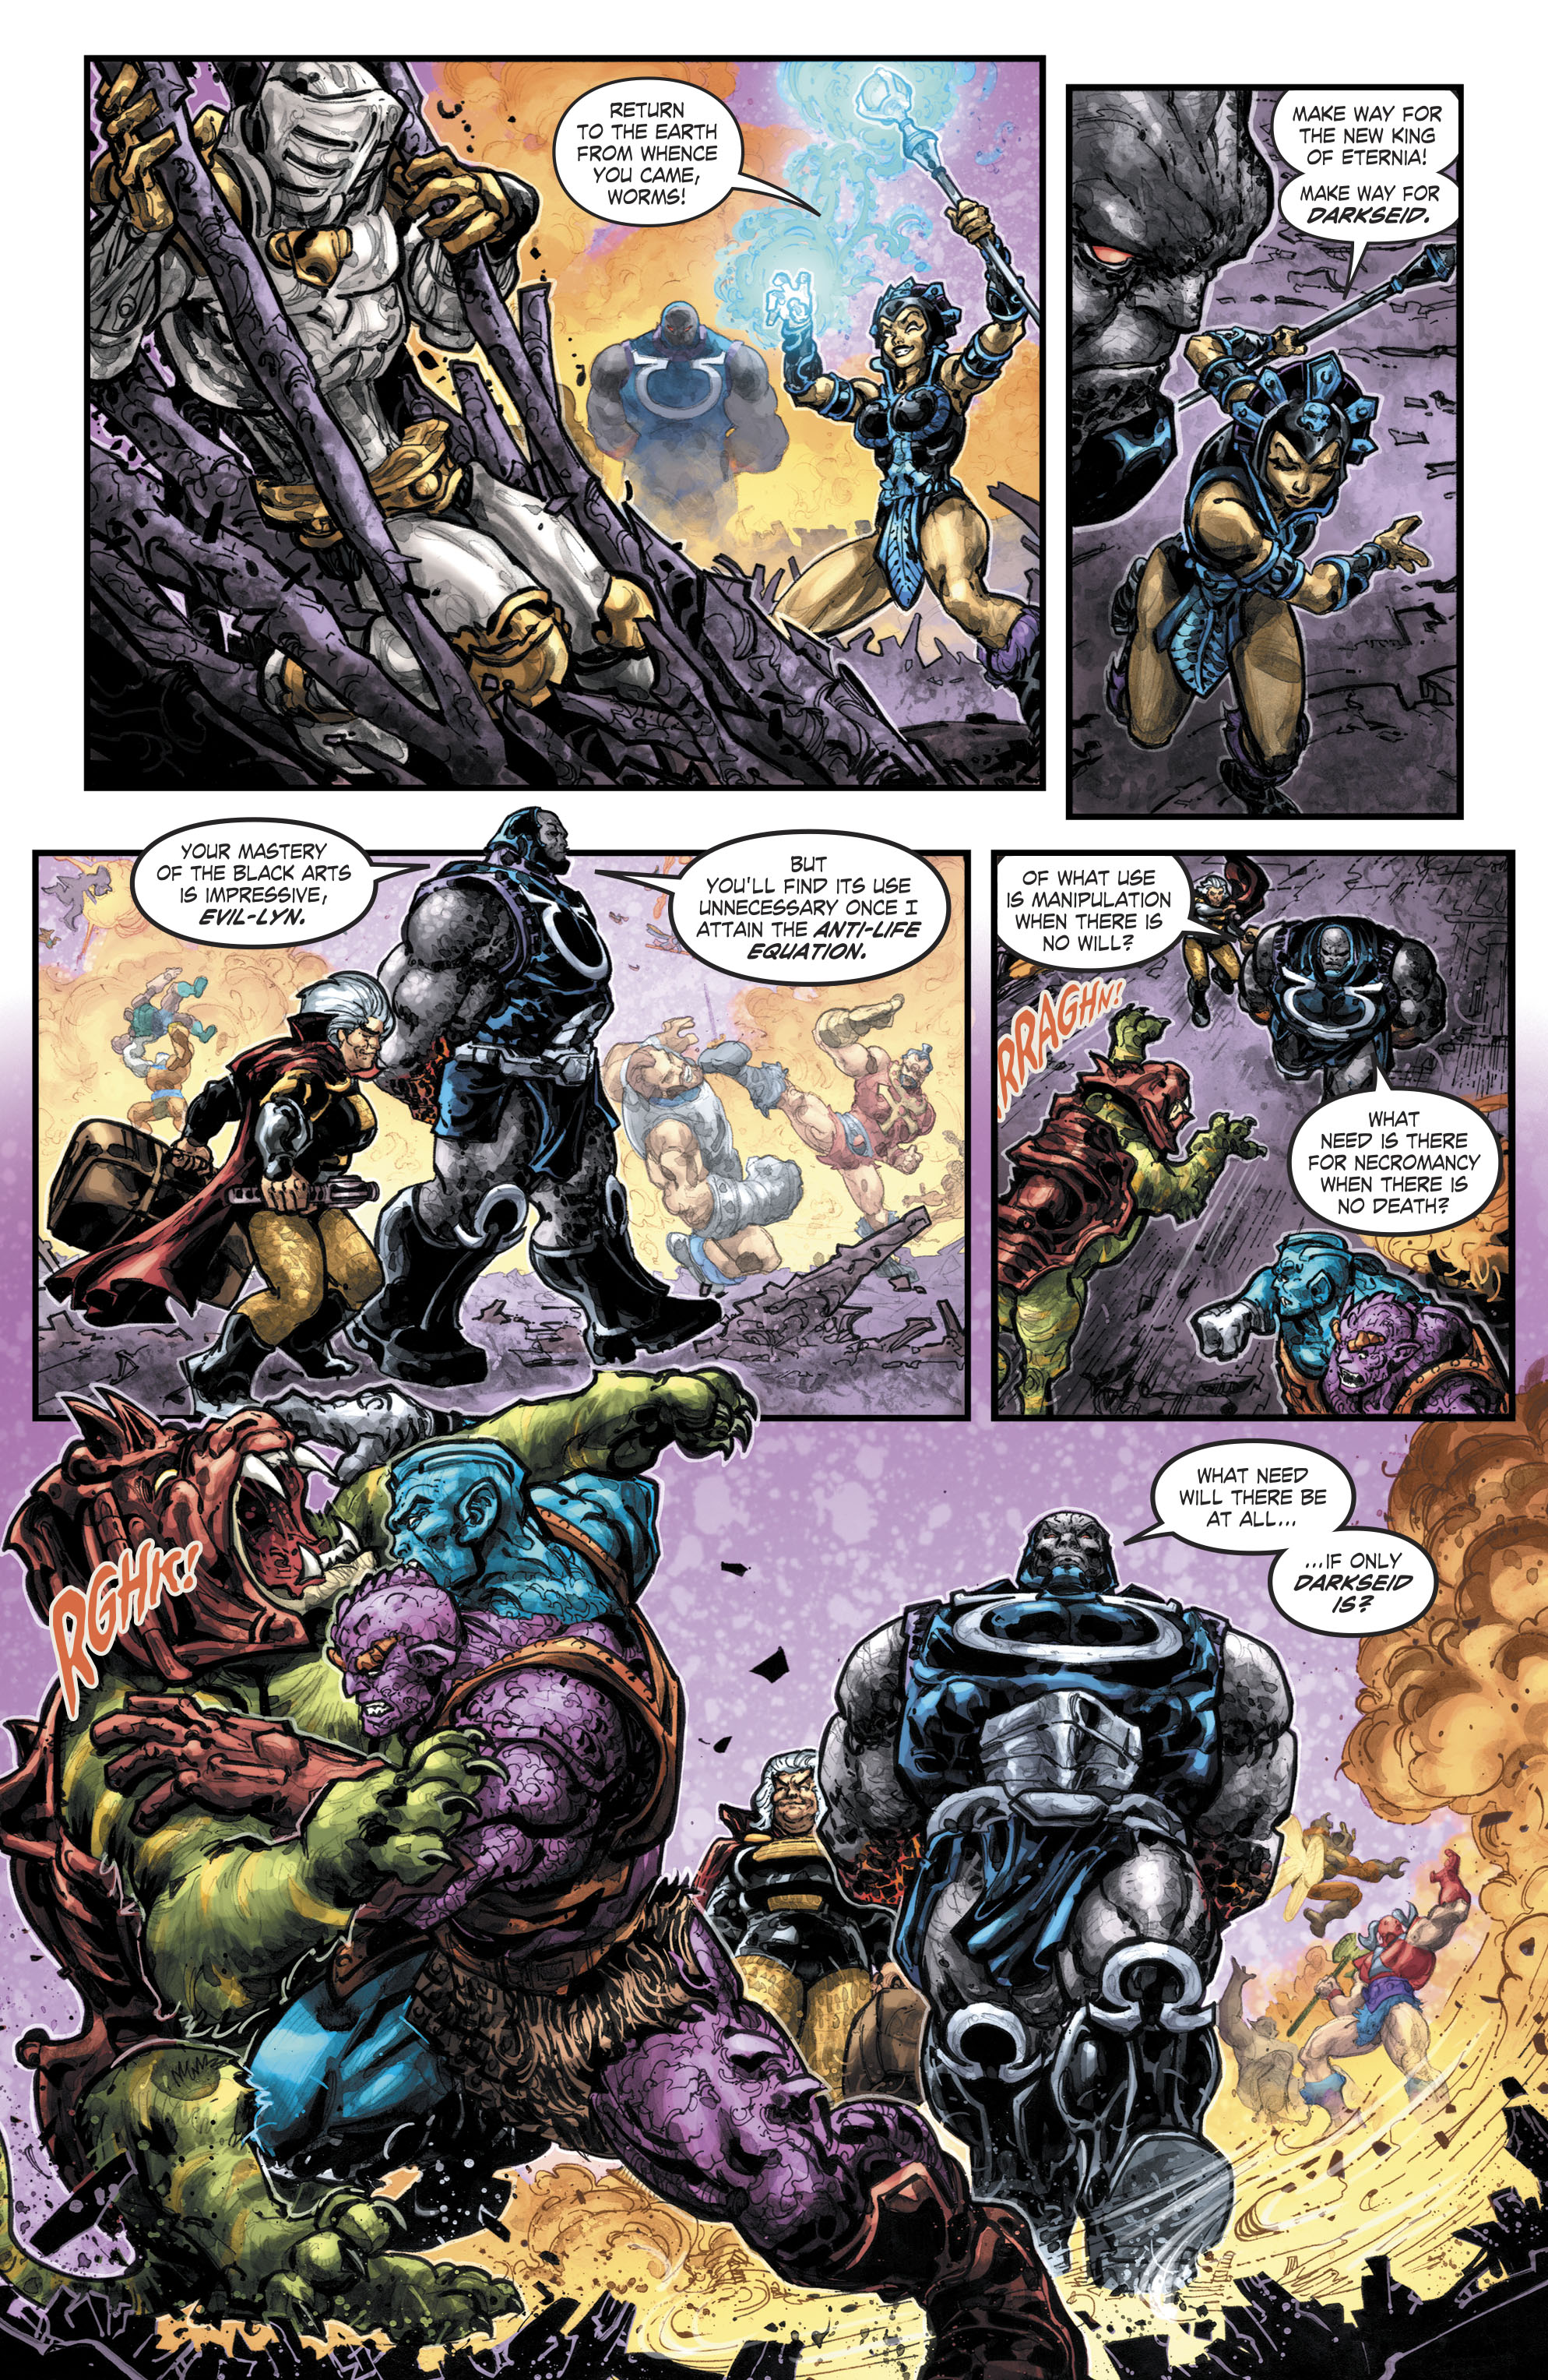 Injustice Vs Masters of the Universe 004 008